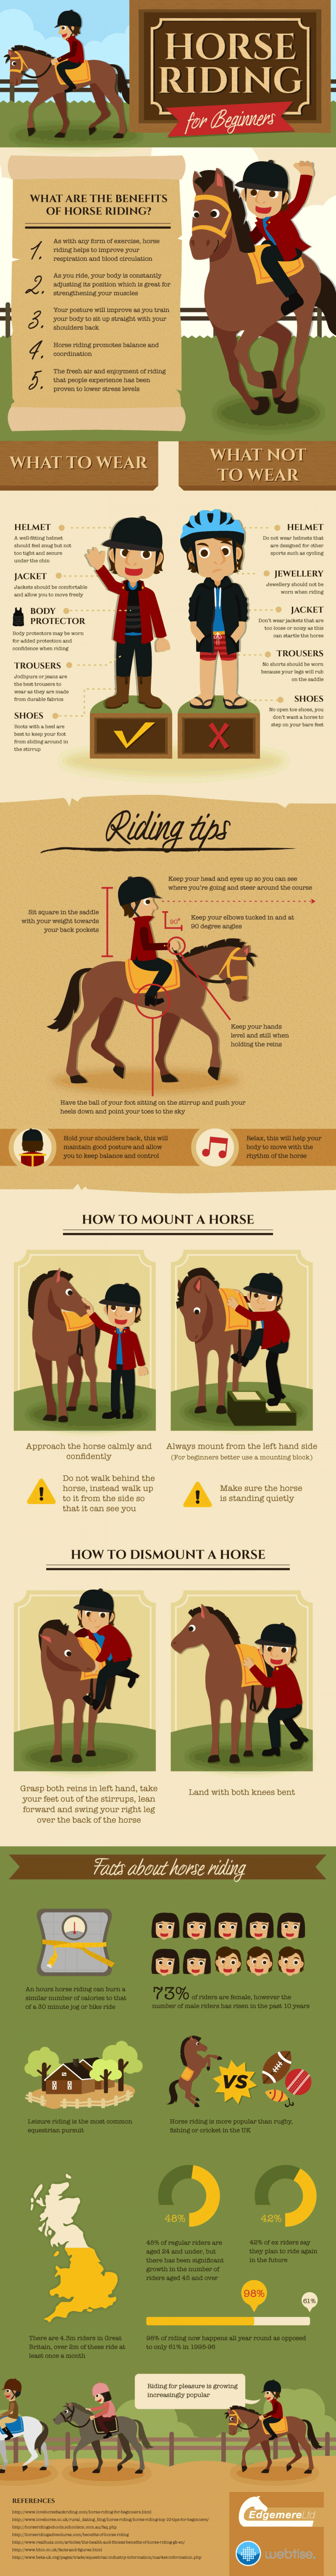 Check out Horseback Riding The Right Way | How to Ride A Horse - English Riding at https://homesteading.com/horseback-riding/